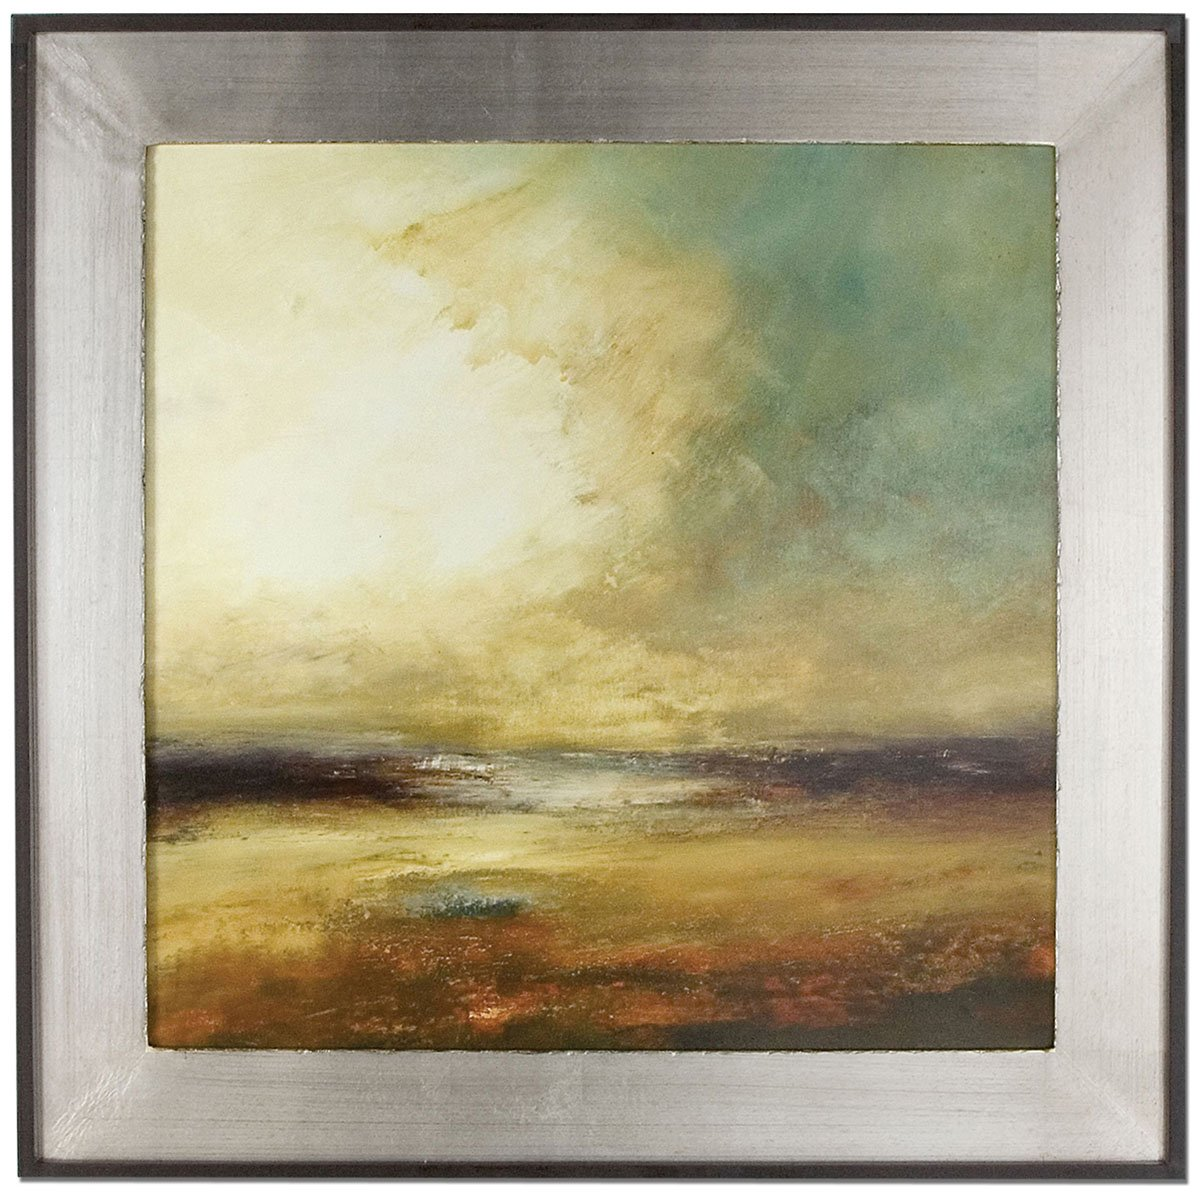 Amazon.com: Uttermost 41408 New Land Framed Art: Oil Paintings ...